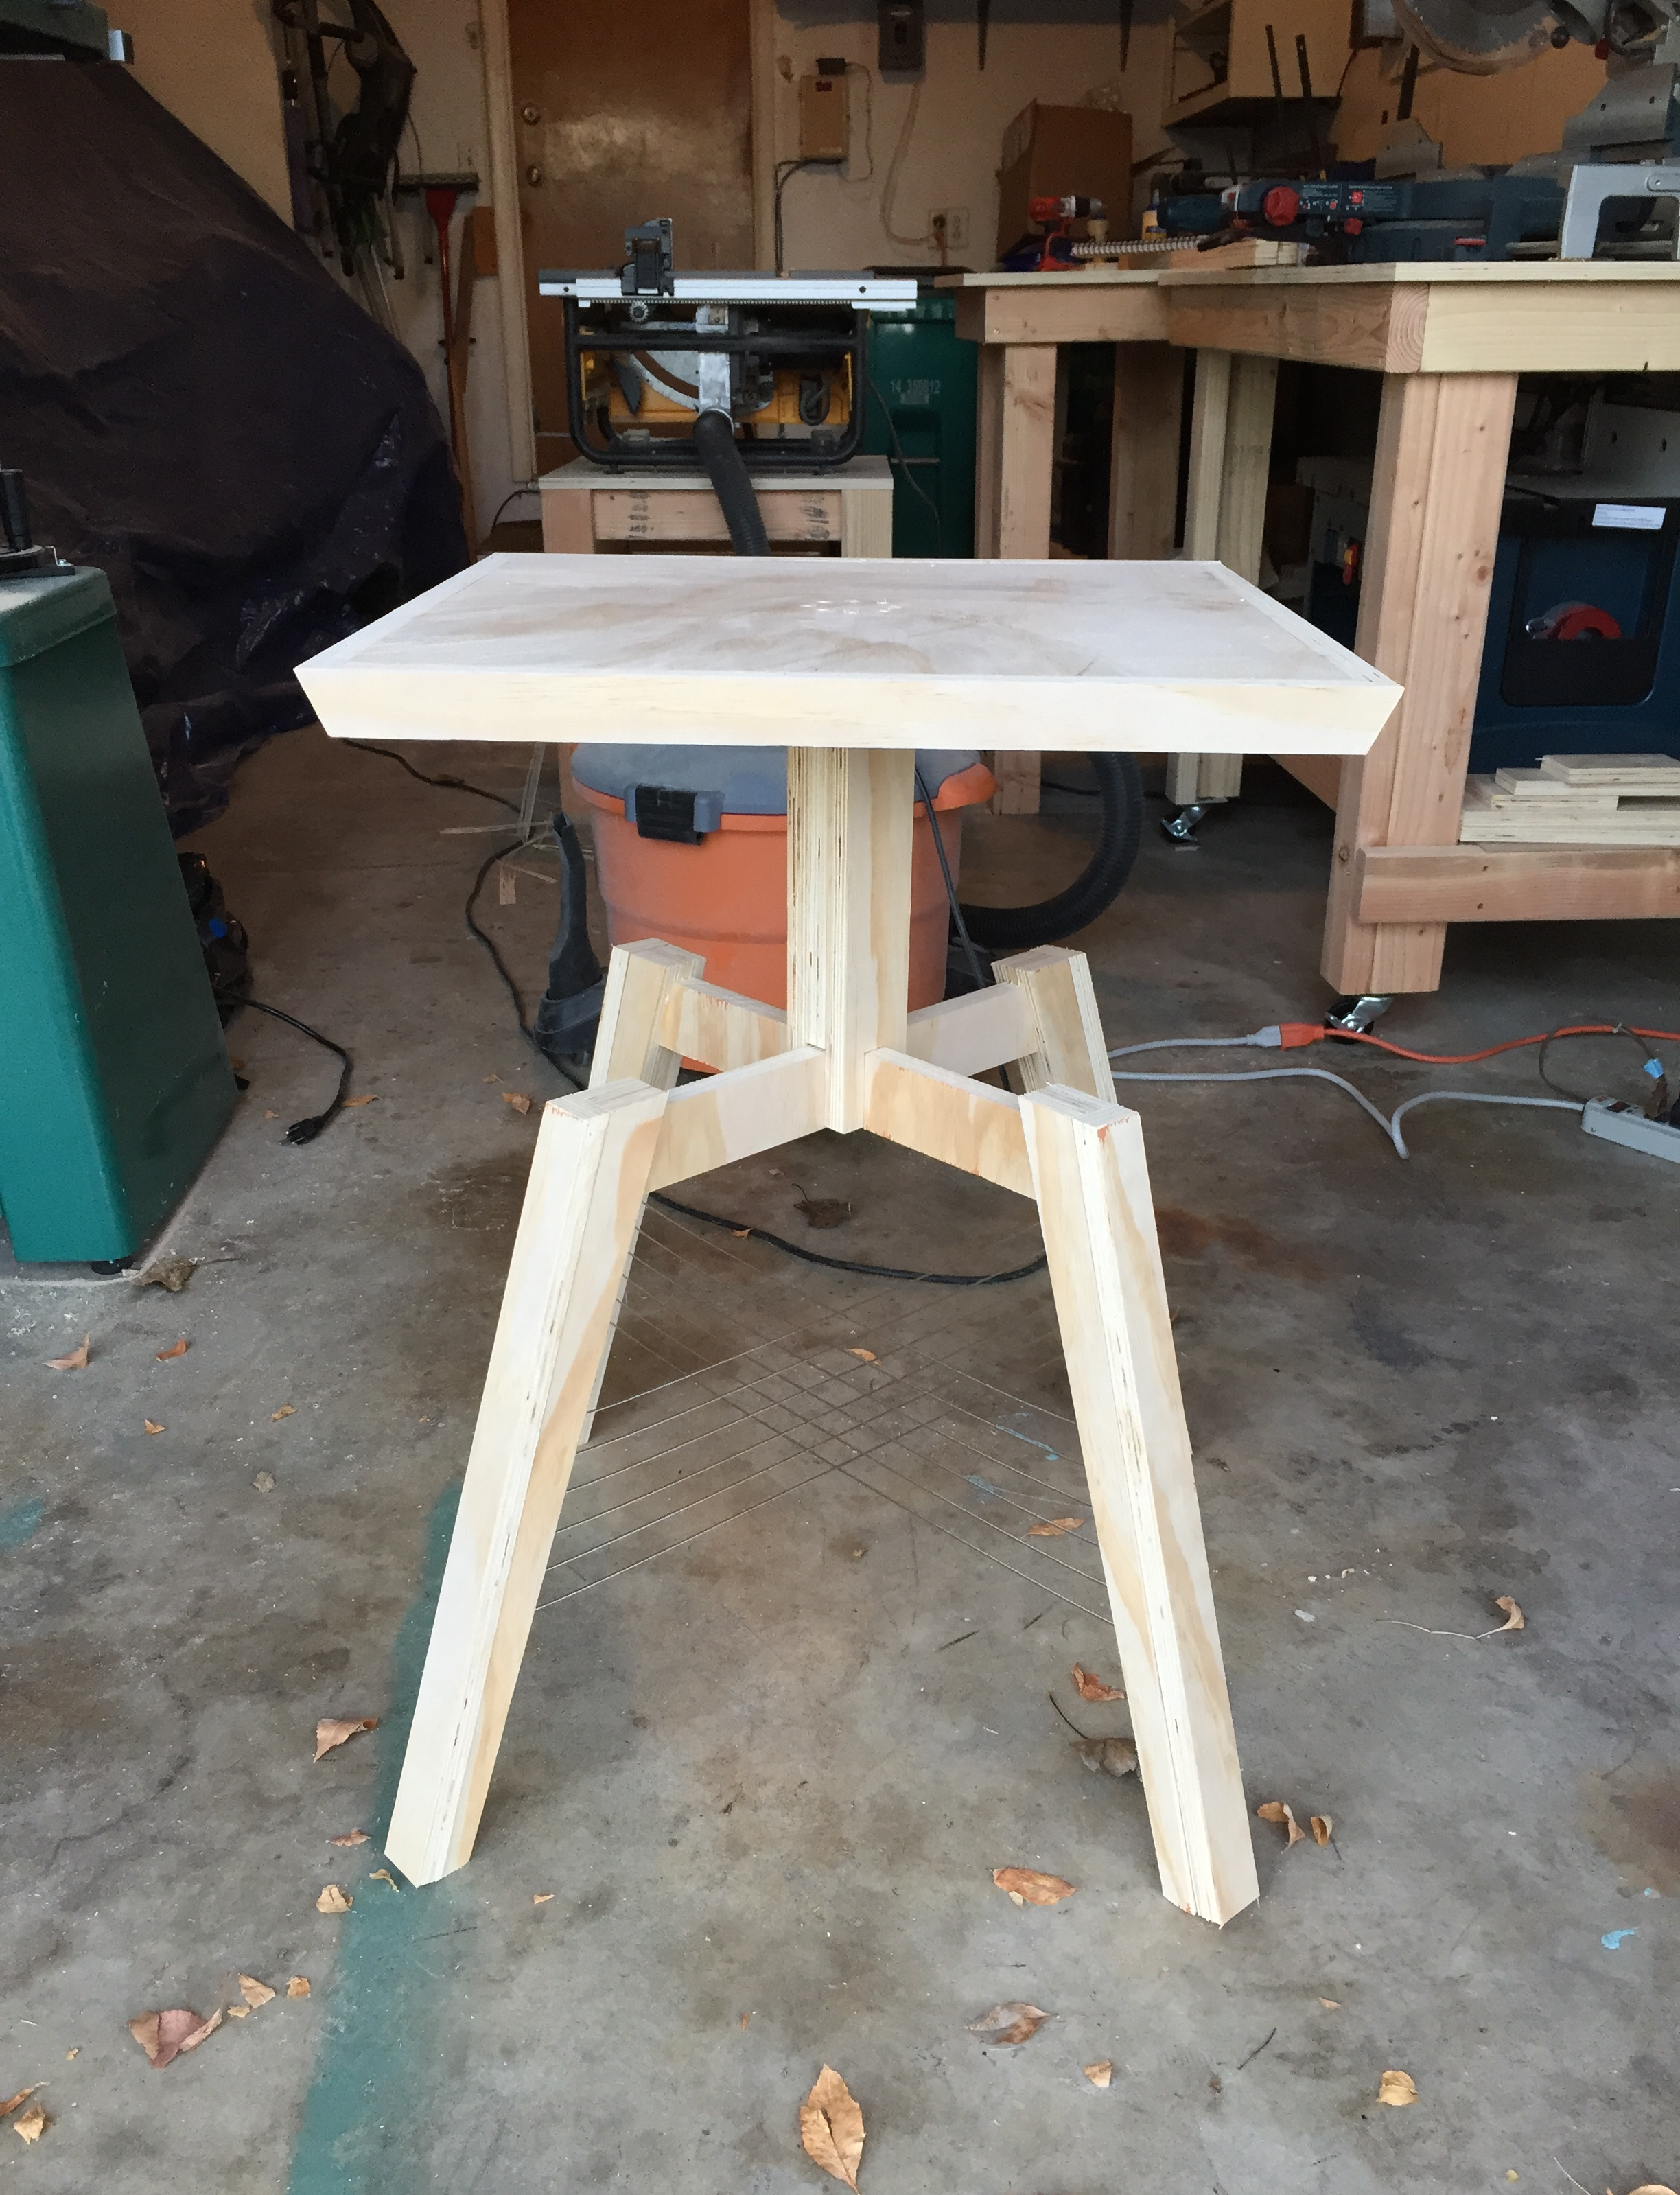 The first prototype for a new end table... It didn't turn out so well!